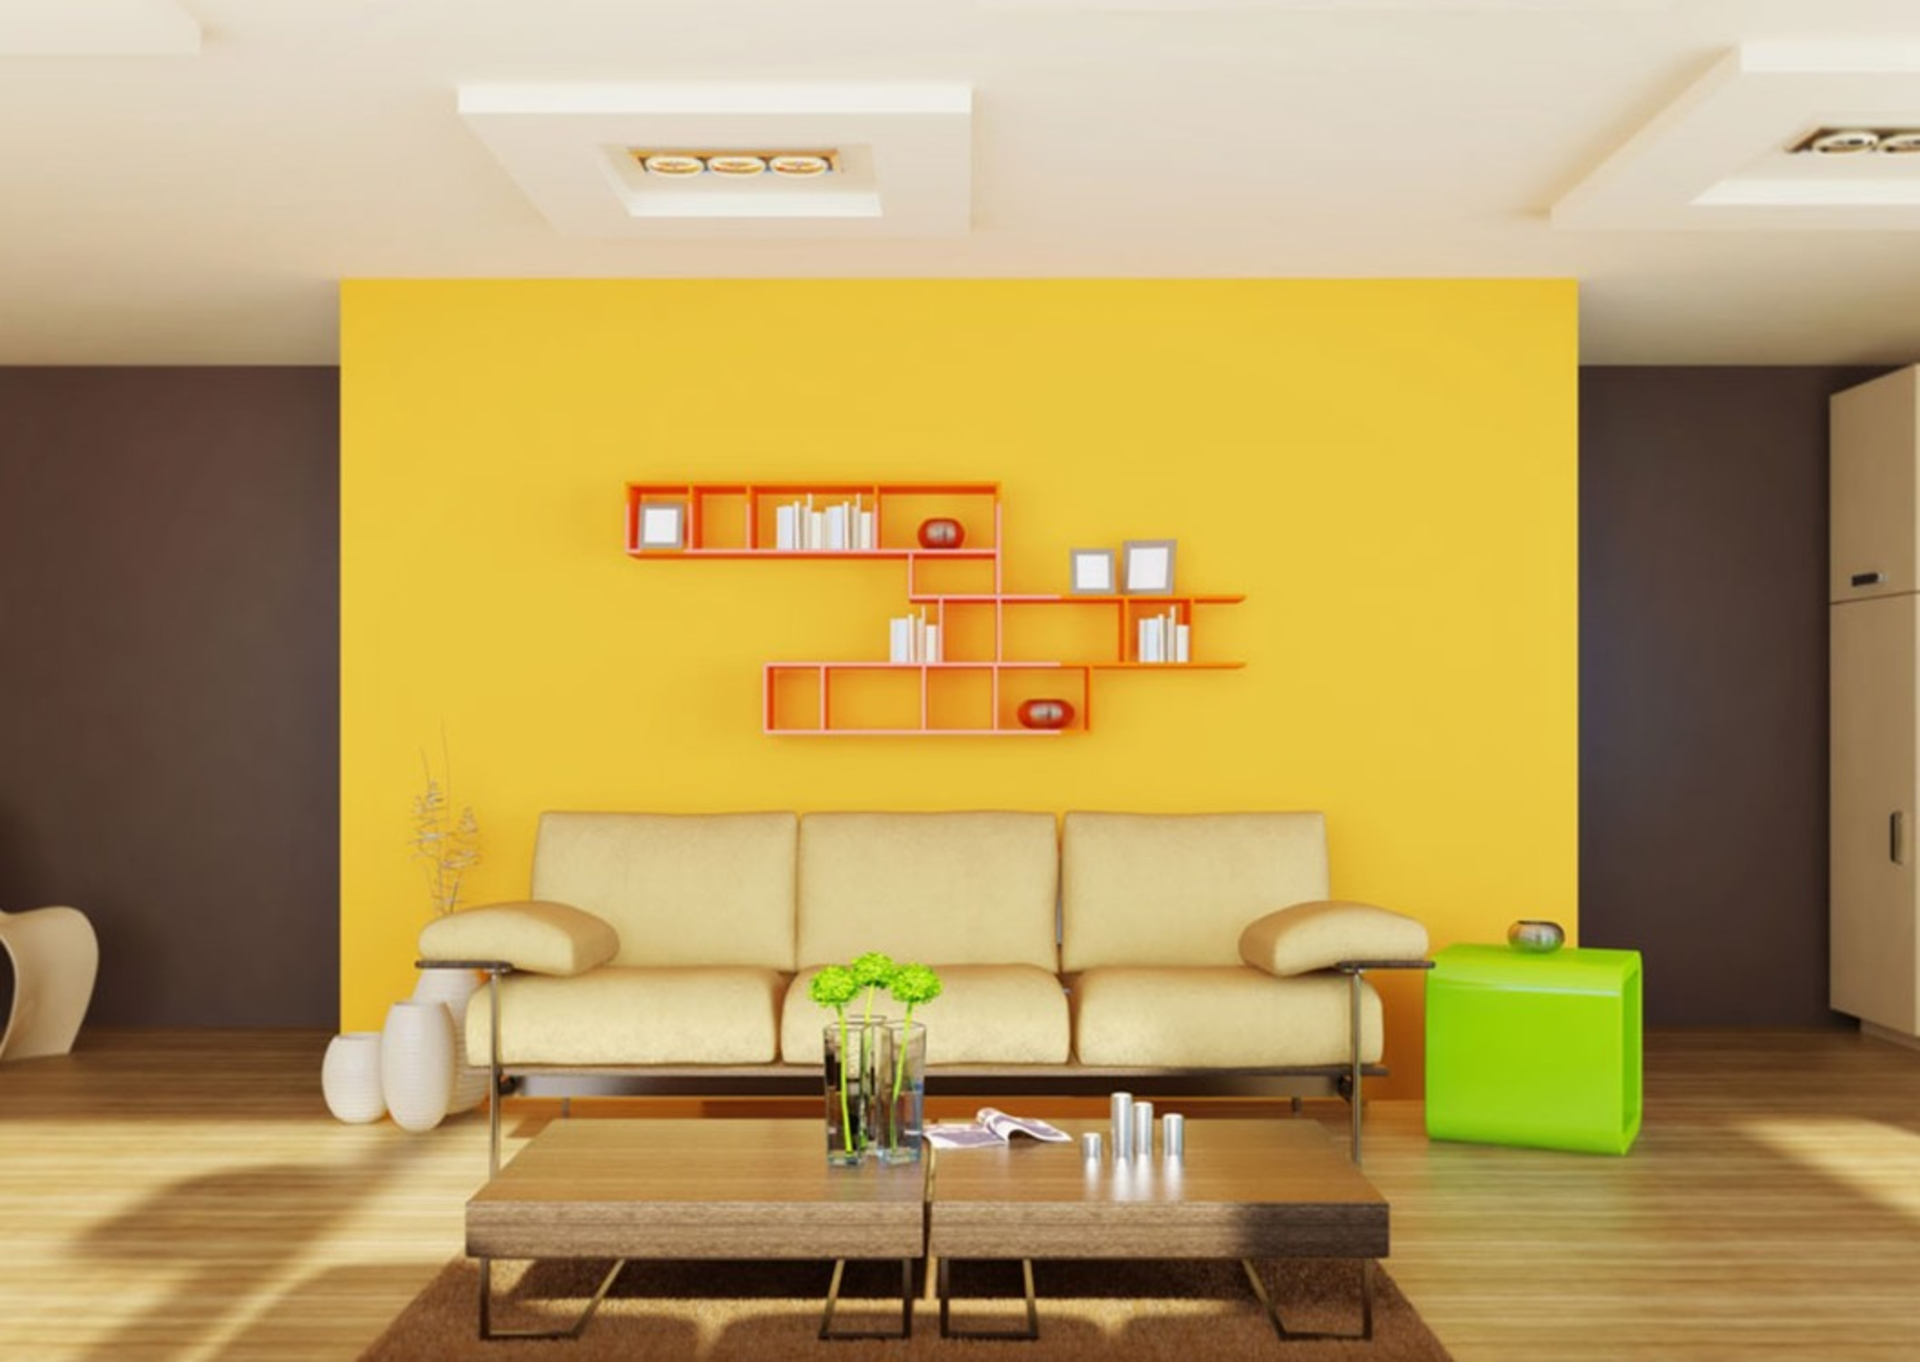 The Importance Of Colors In Your Home Design The Mustard Ceiling